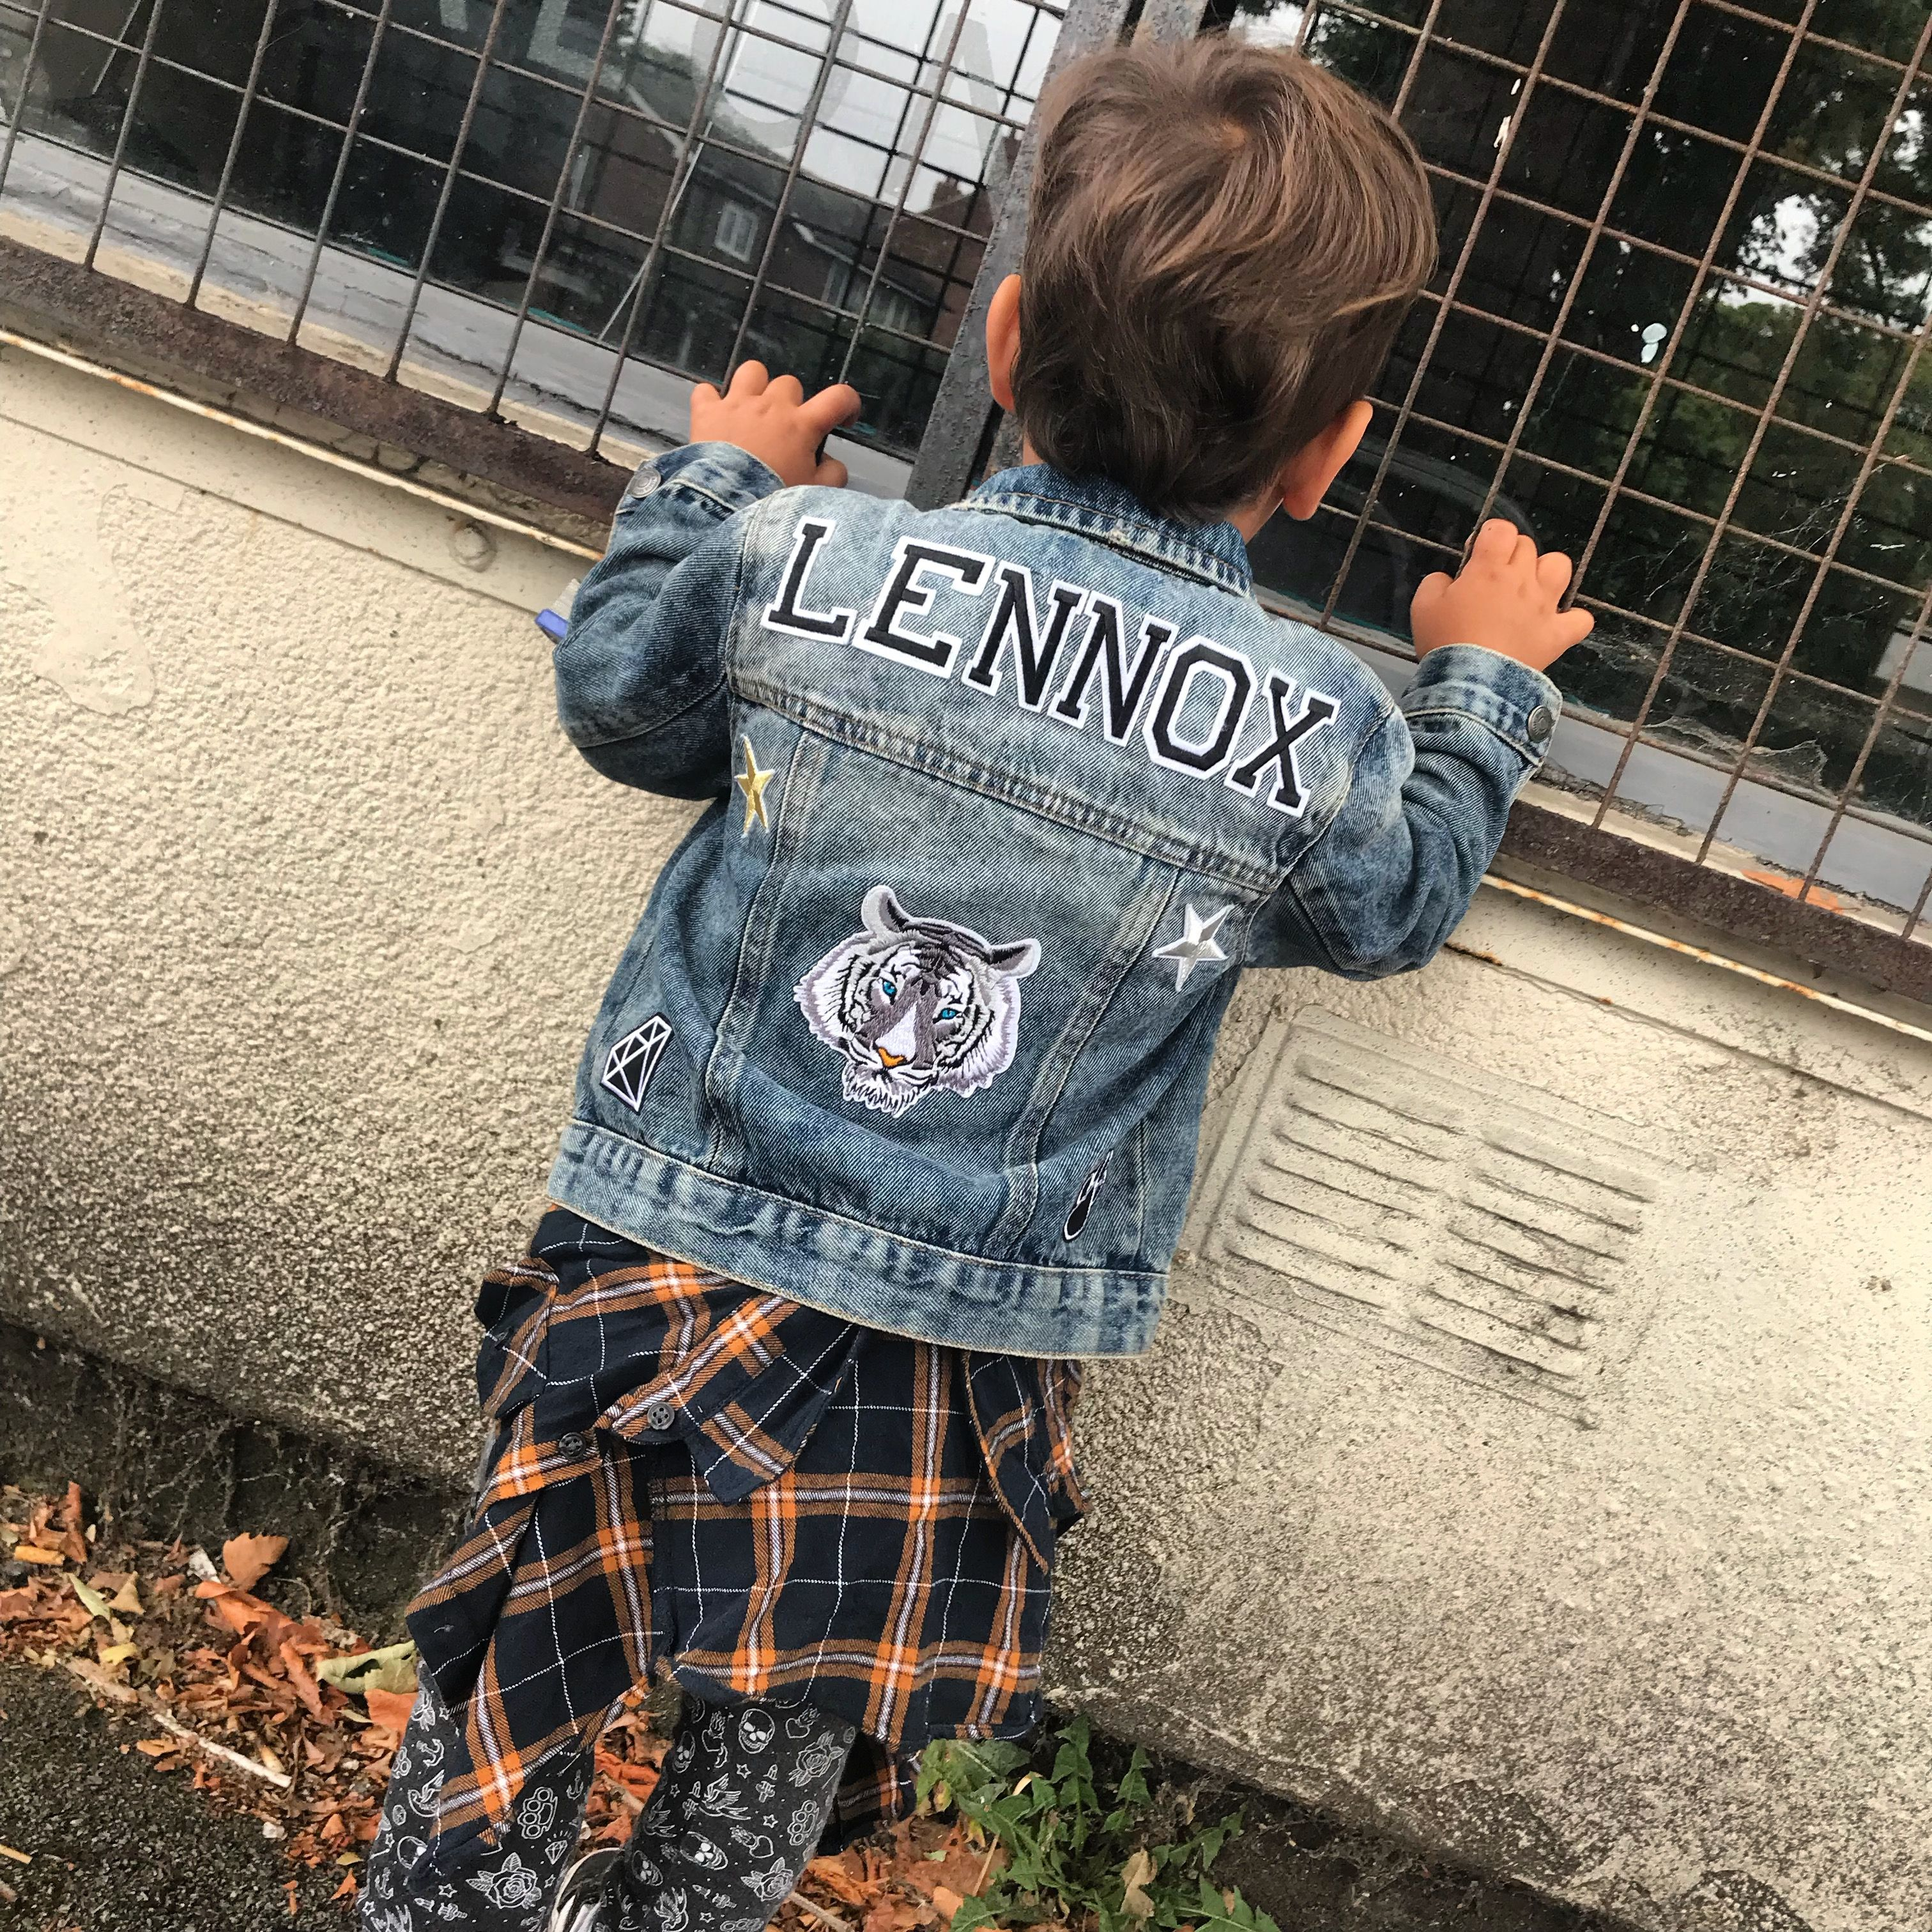 Custom Made Personalised Denim Jackets With Patches Cool Kids Style Fashion Kids Denim Jacket Denim Jacket Patches Diy Denim Jacket [ 3024 x 3024 Pixel ]